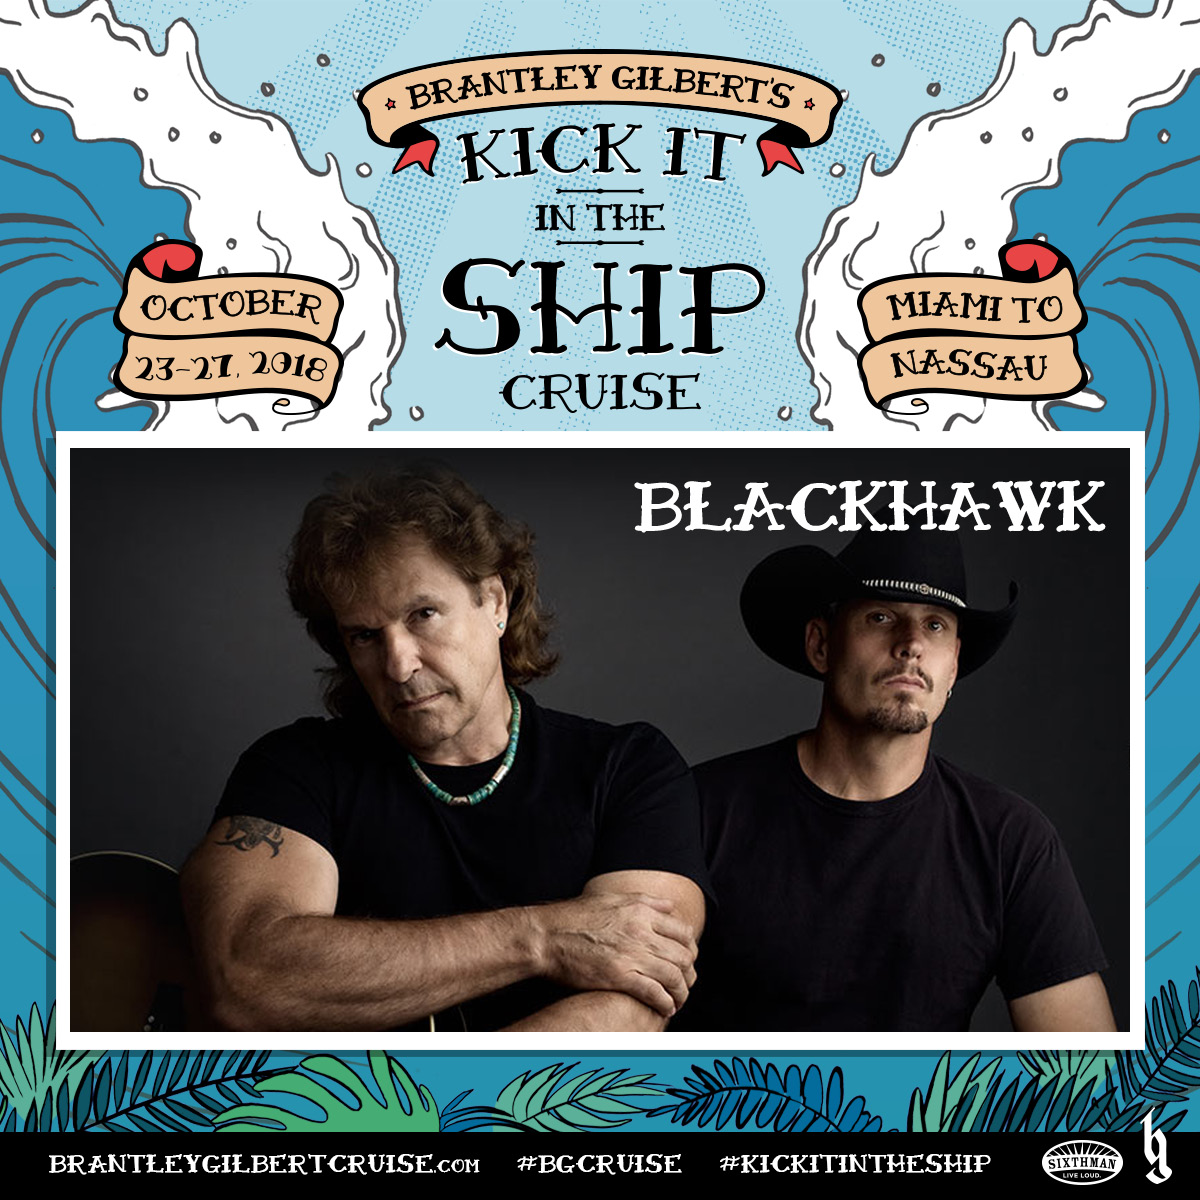 BlackHawk will be #KickItInTheShip on the high seas on Brantley Gilbert's Kick It In The Ship Cruise